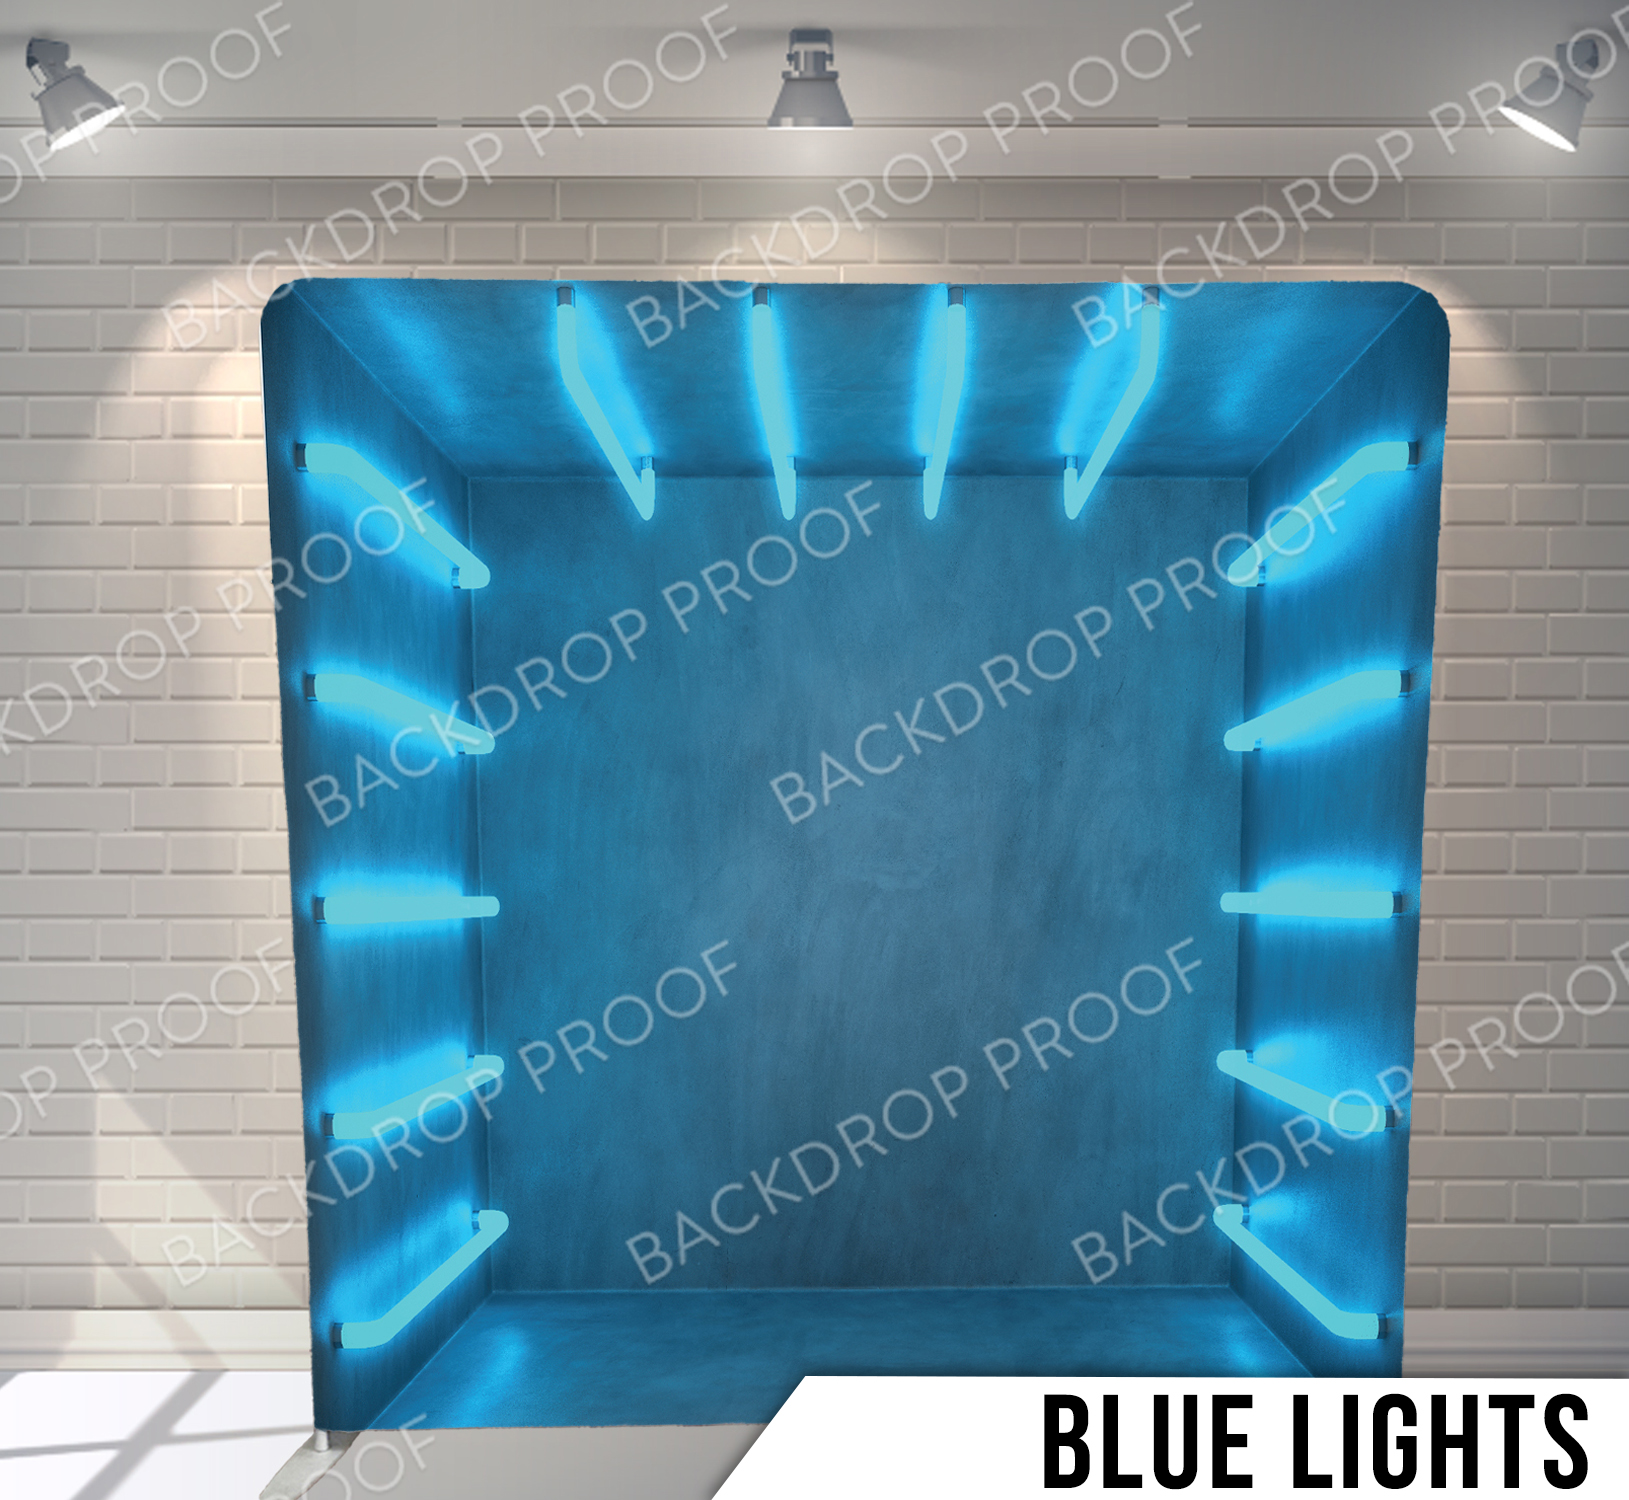 PILLOW_BLUELIGHTS_G (1).jpg